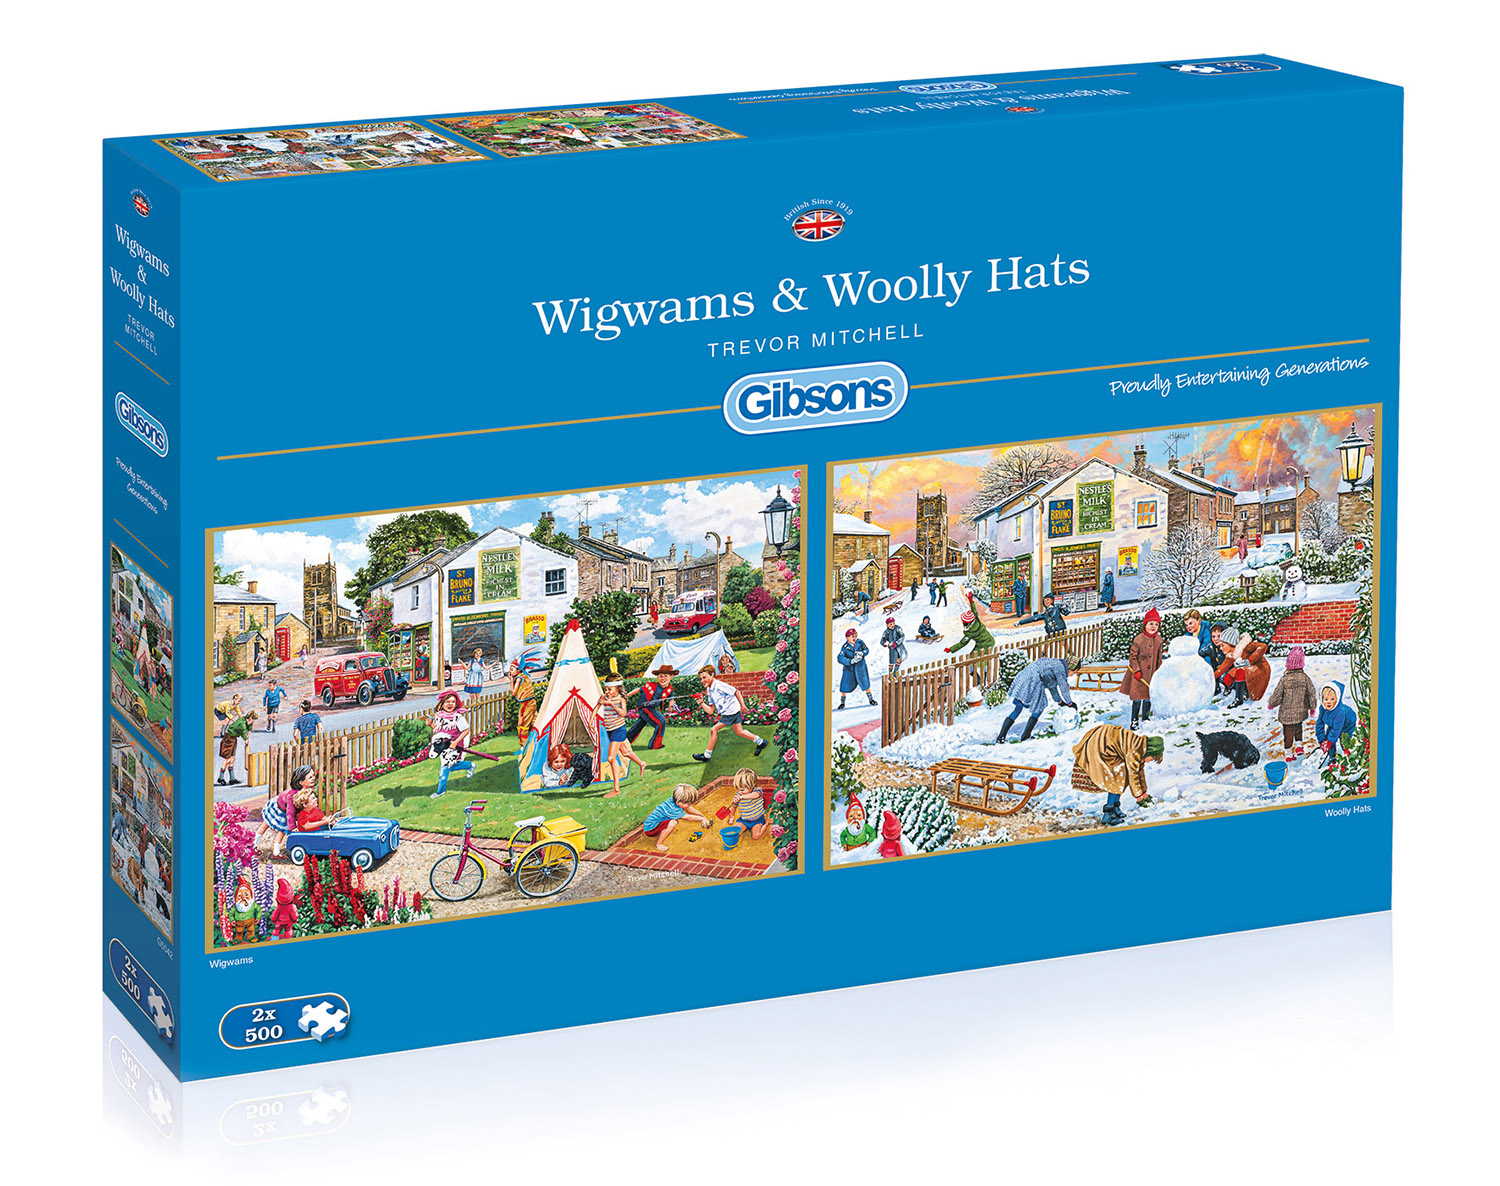 G5042-Wigwams-Woolly-Hats-box